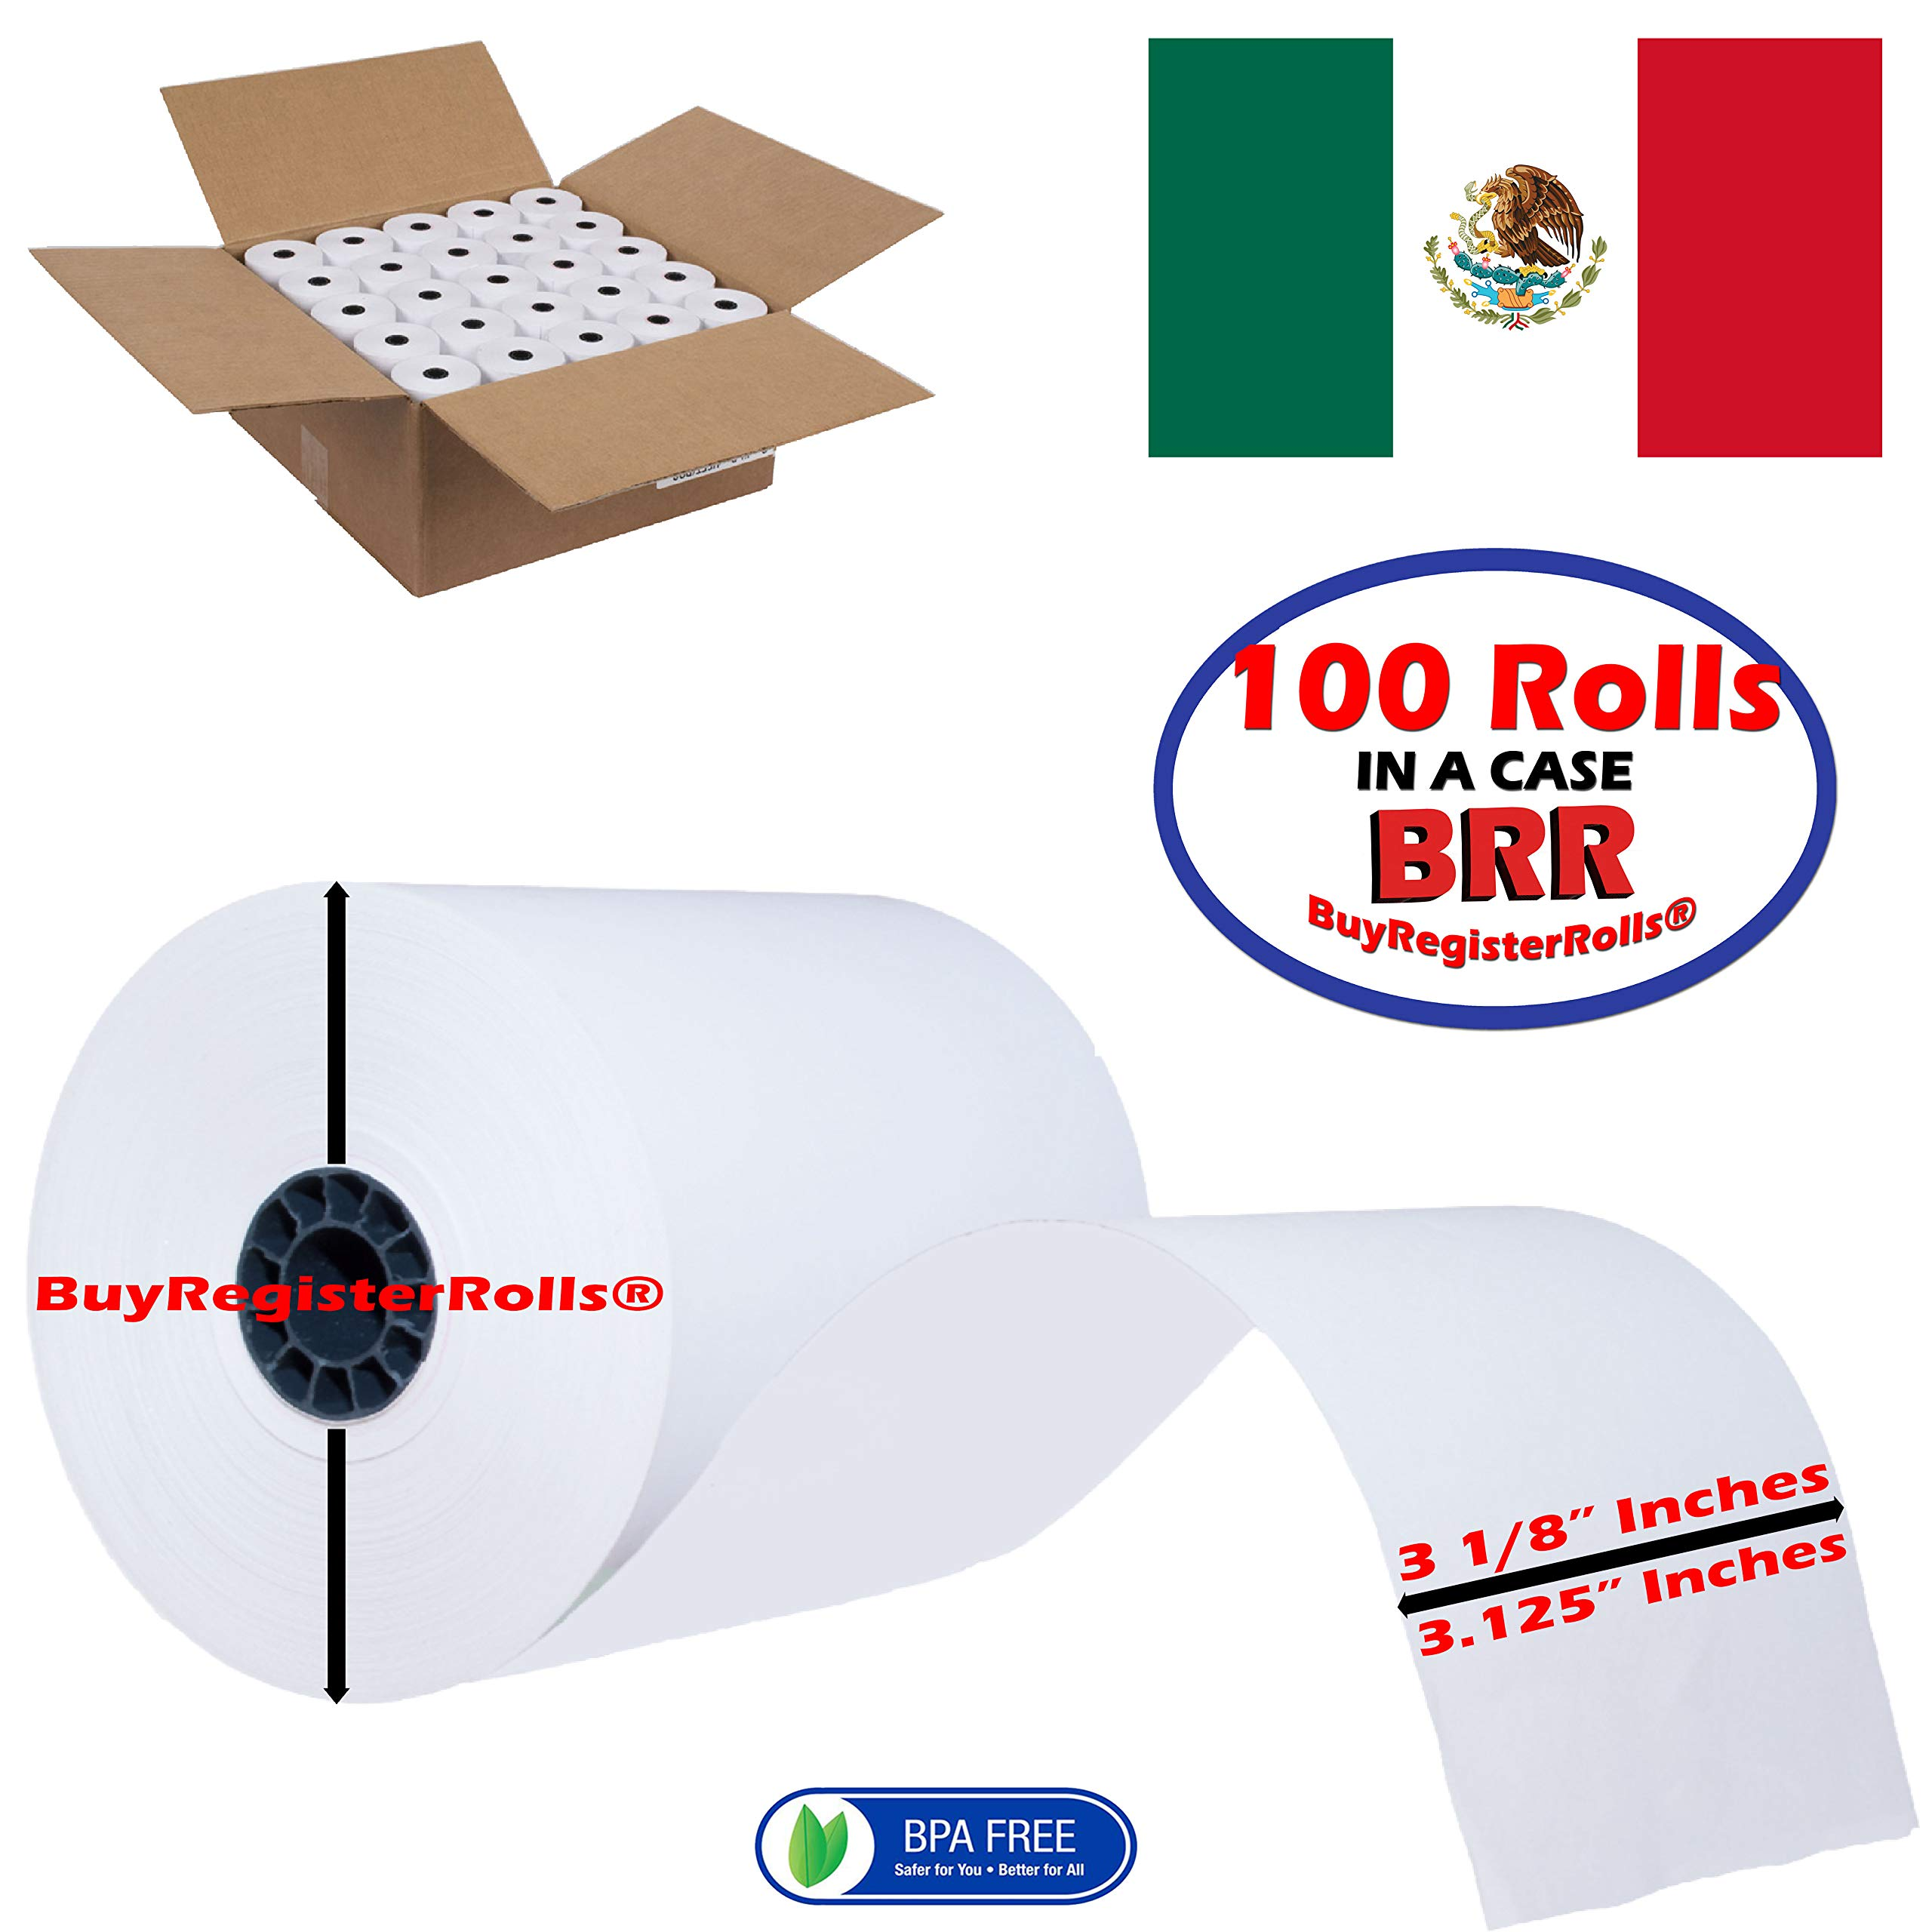 3 1/8 x 230 Thermal Paper roll 100 Pack | More Paper Than Others | Super Saver Value Pack | from BuyRegisterRolls by BuyRegisterRolls